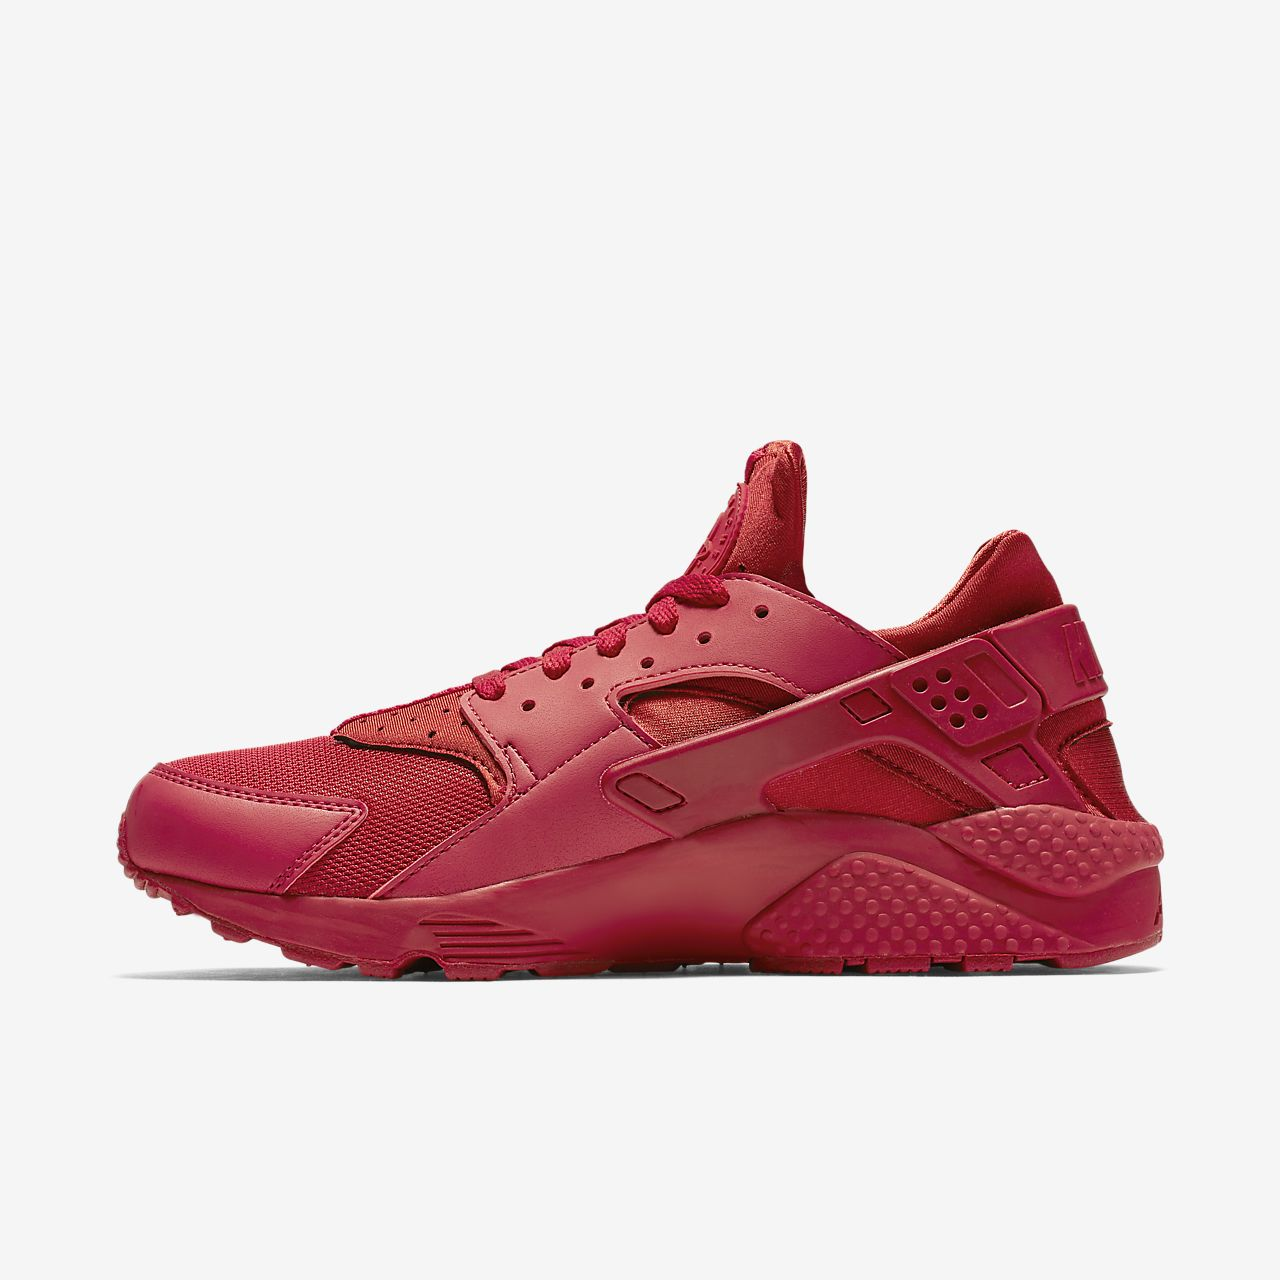 75dade21d898 Nike Air Huarache Men s Shoe. Nike.com